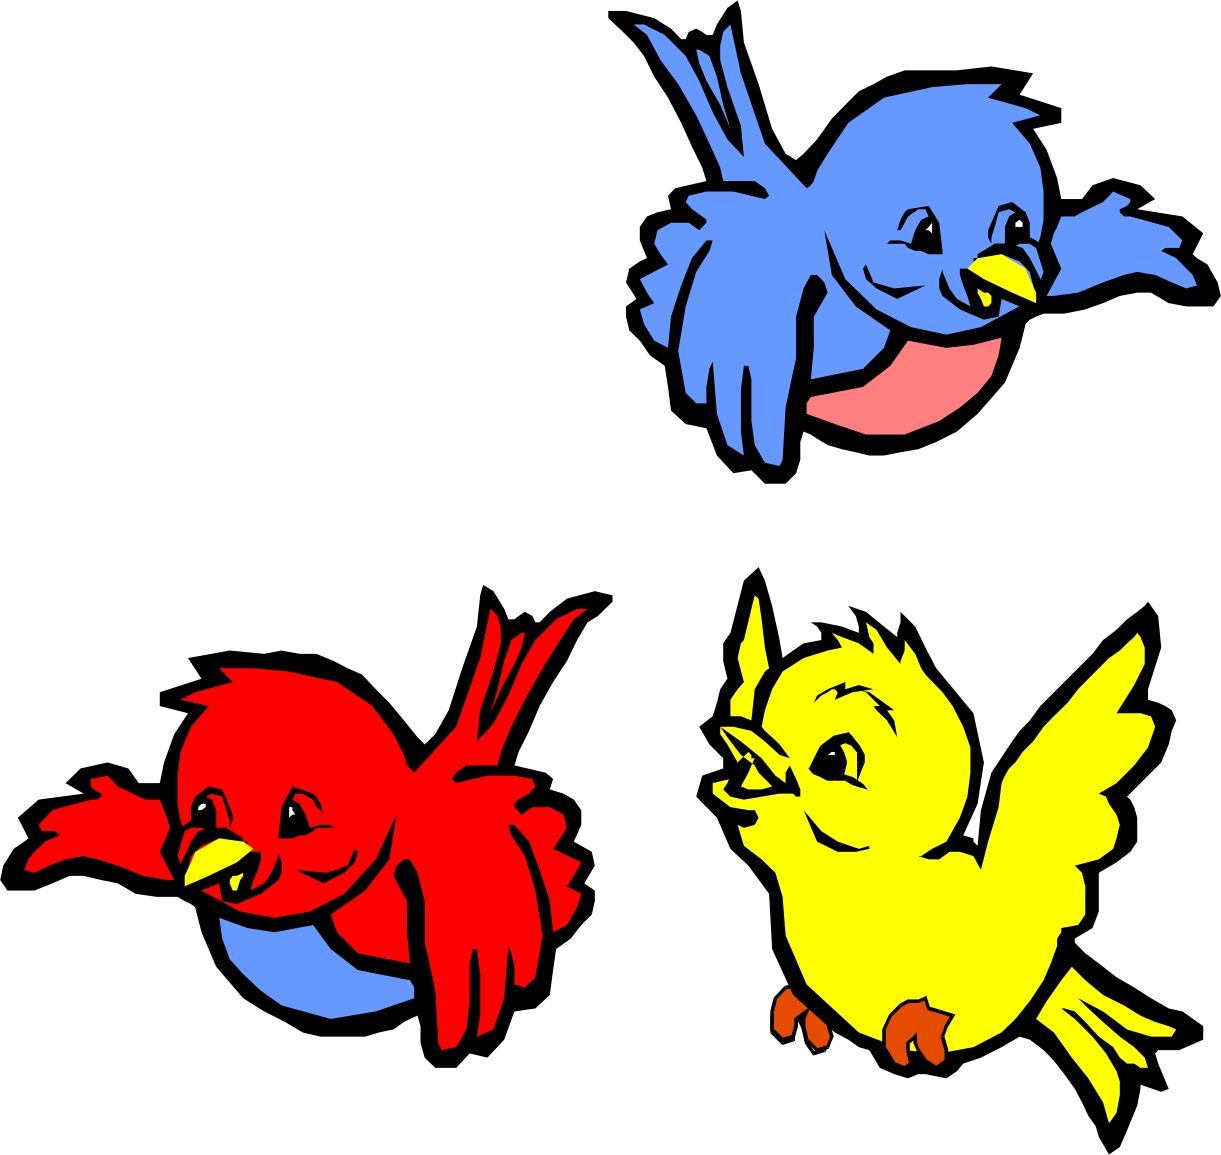 birds flying bird clipart animated cartoon clip cliparts animation aviary nest graphic library clipartmag coloring cute drawing pages collection clipartbest